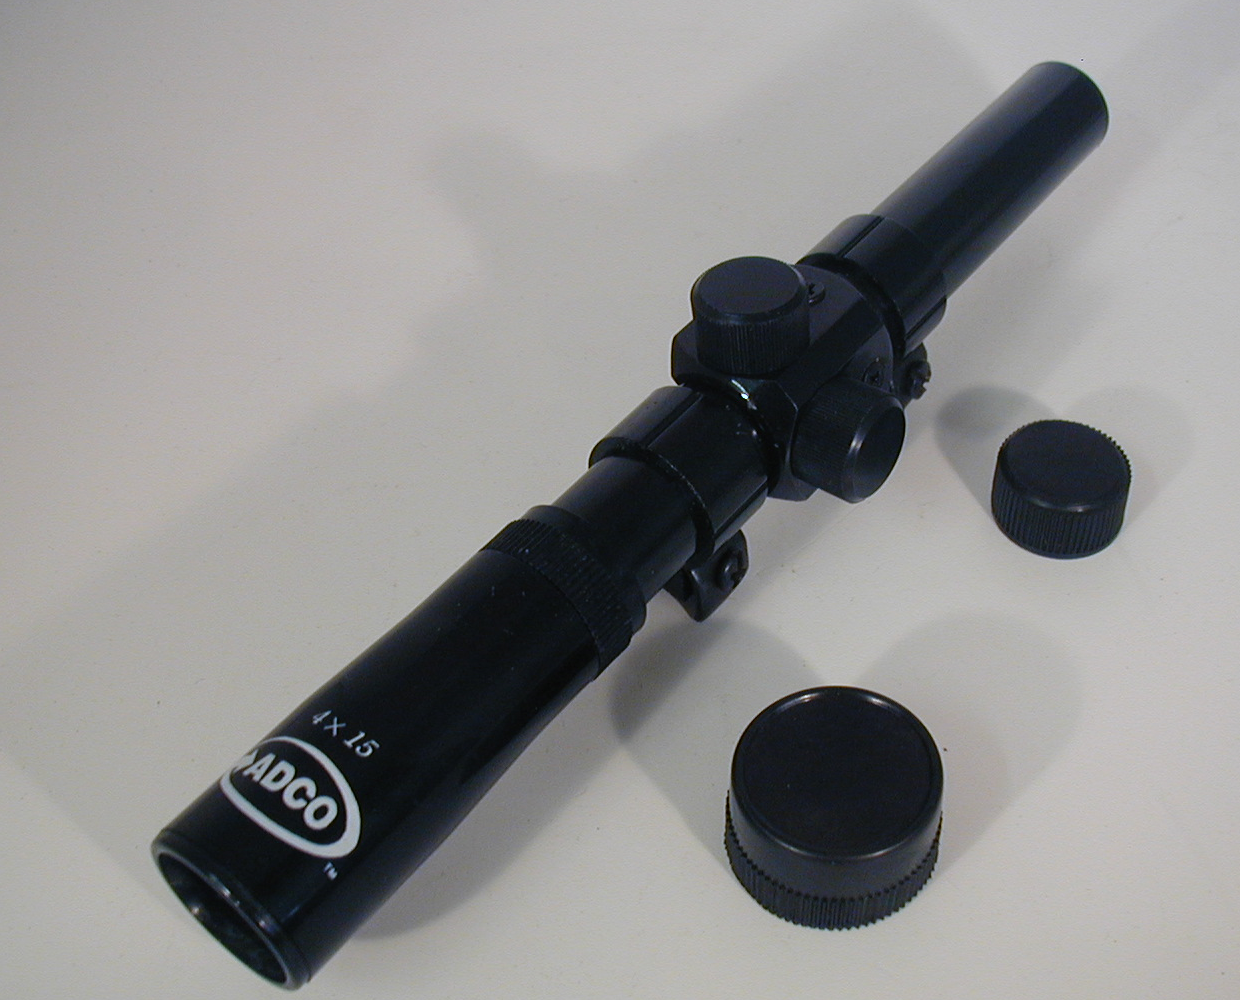 adco-4x-power-scope-with-rings-416-scope